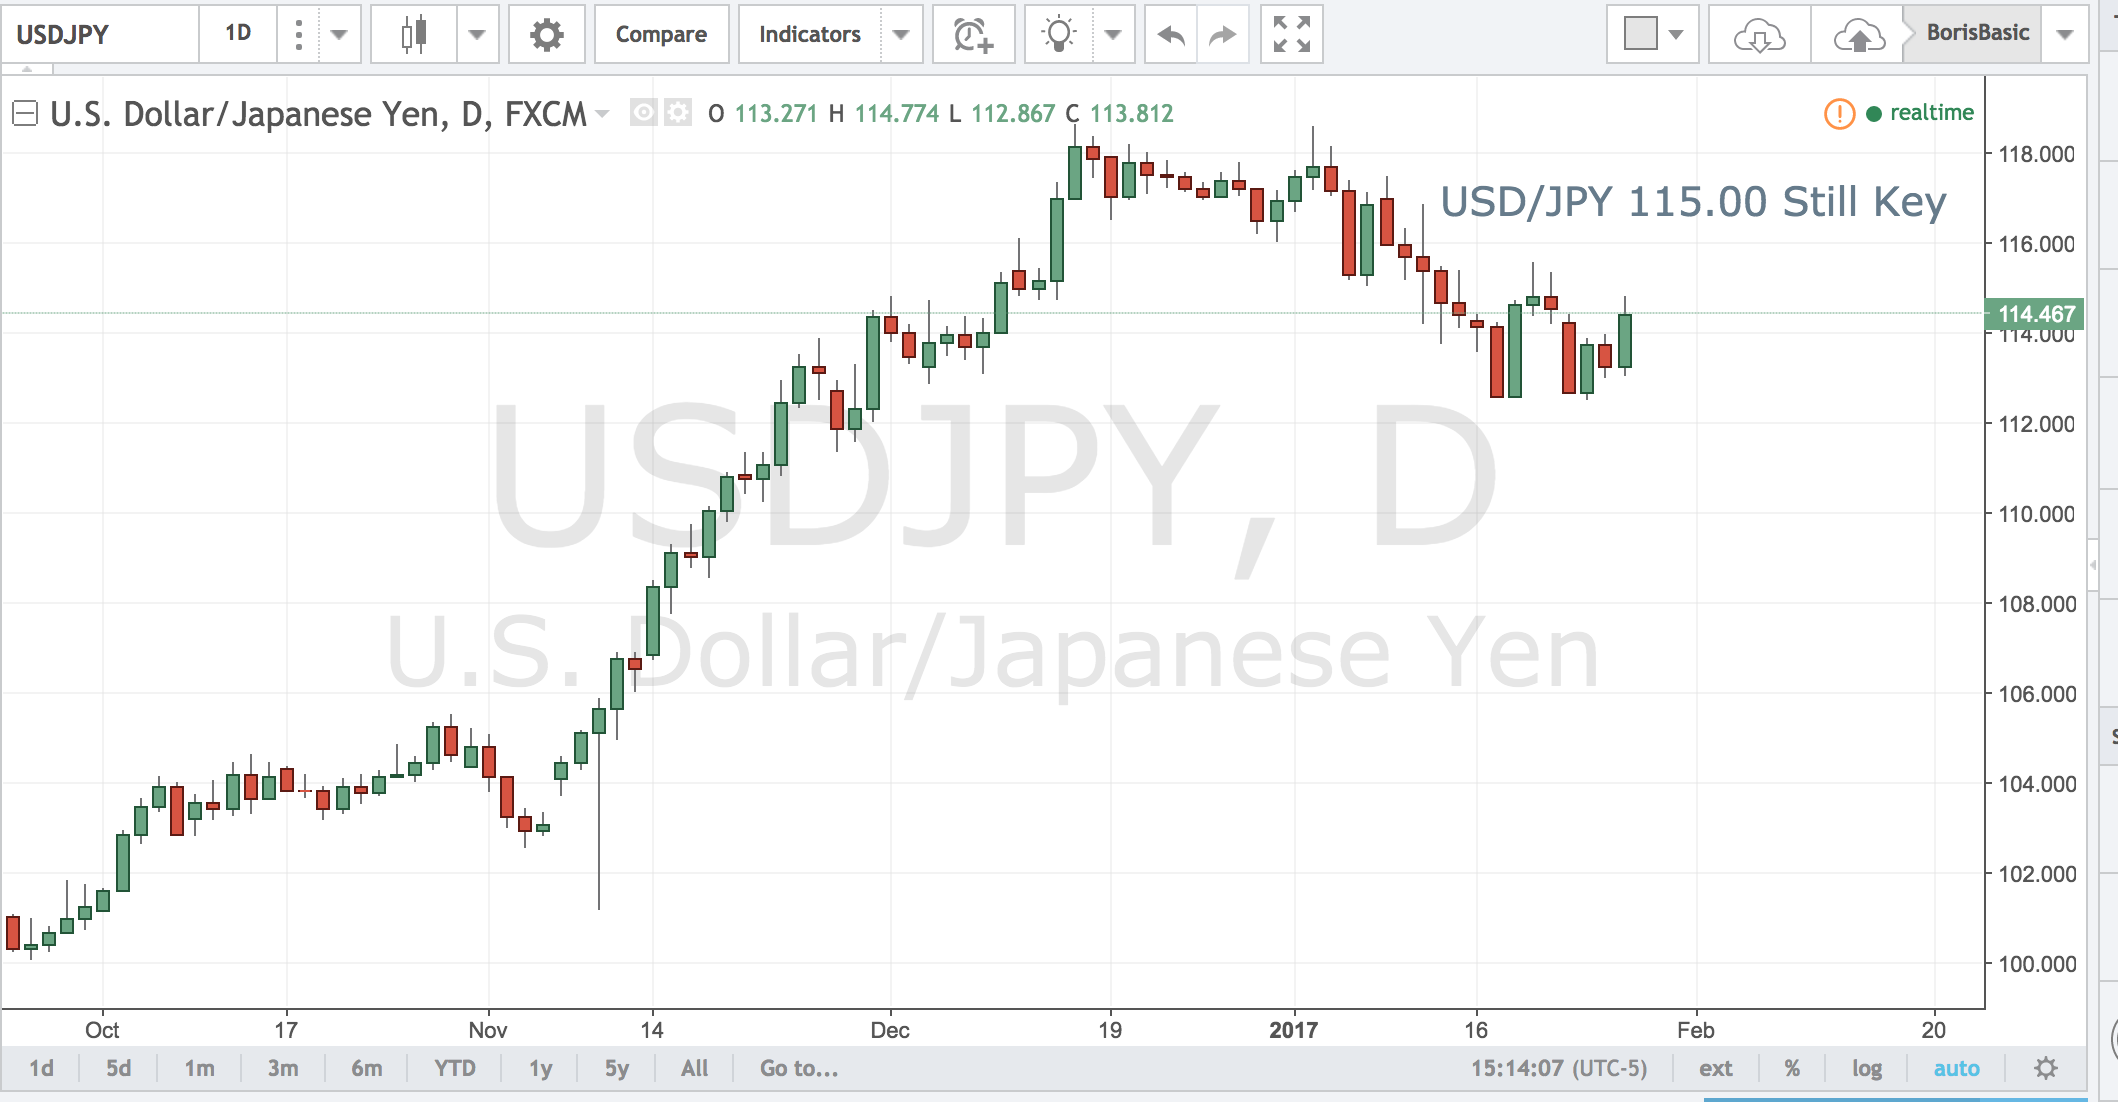 USDJPY – 115.00 Still Key